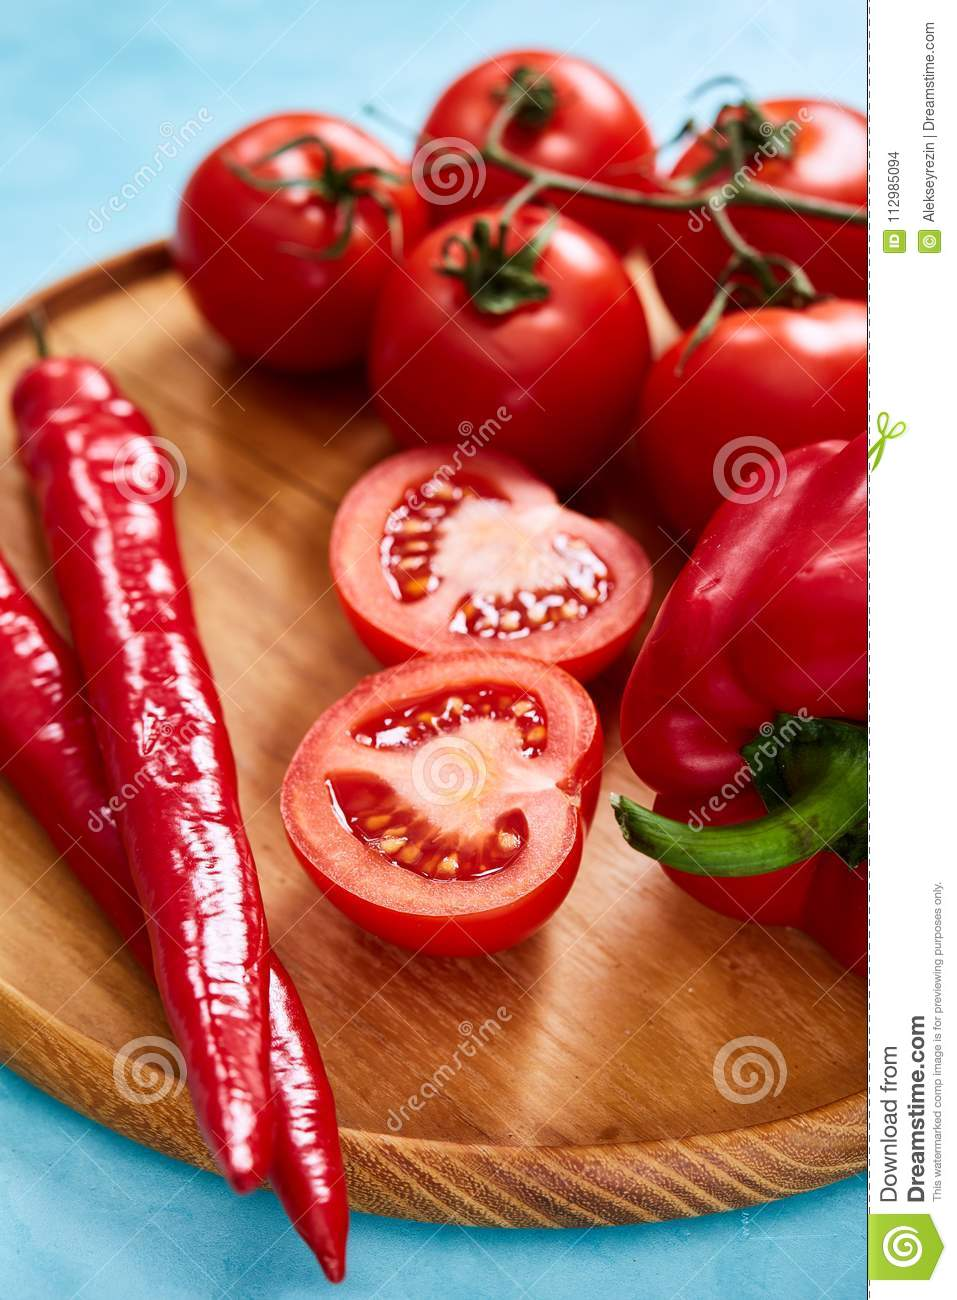 Composition of tomato bunch and halves and sweet pepper on wooden plate, top view, close-up, selective focus.